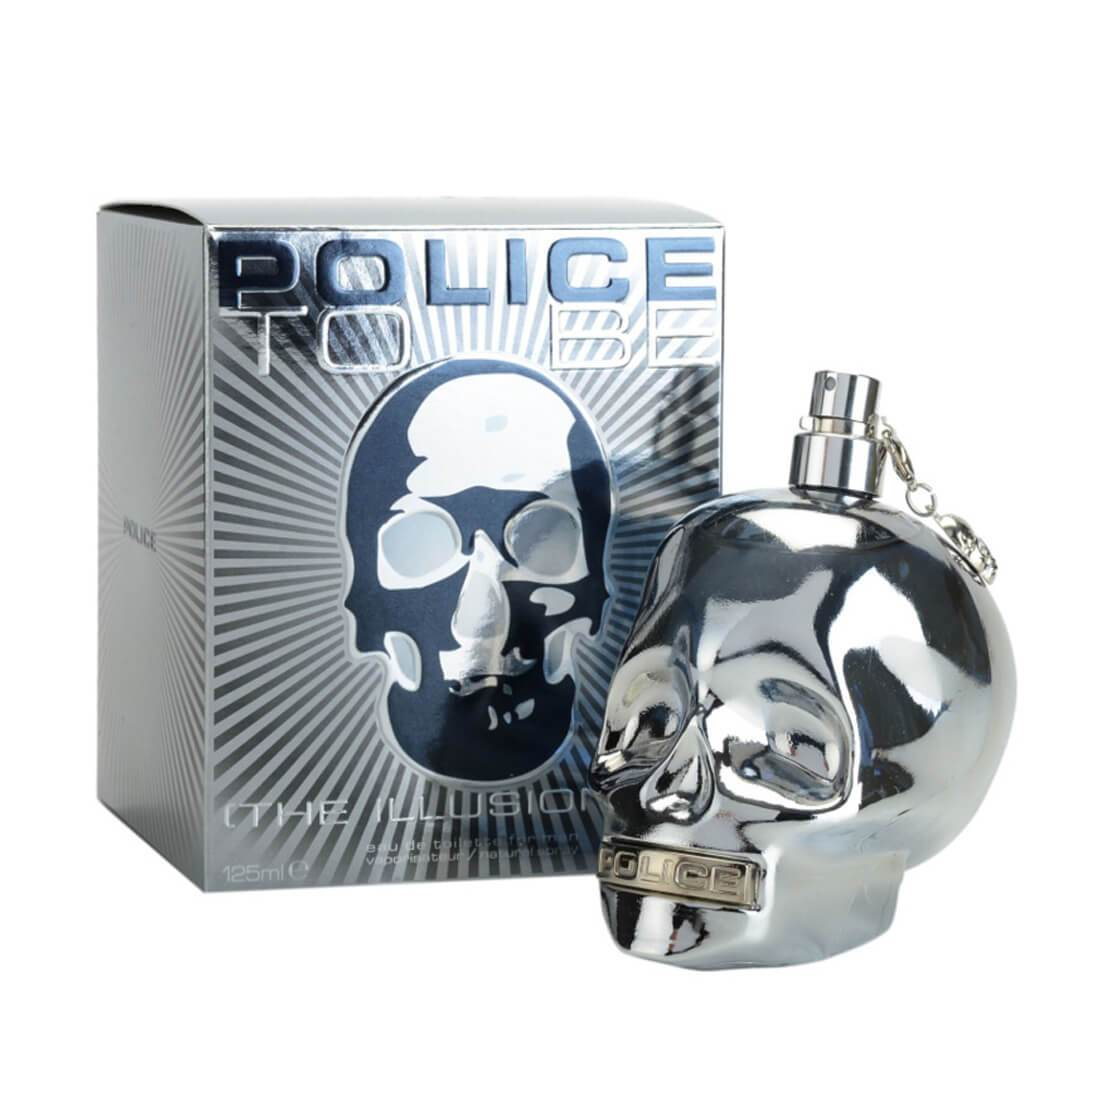 Police to Be Illusionist EDT Perfume - 125ml